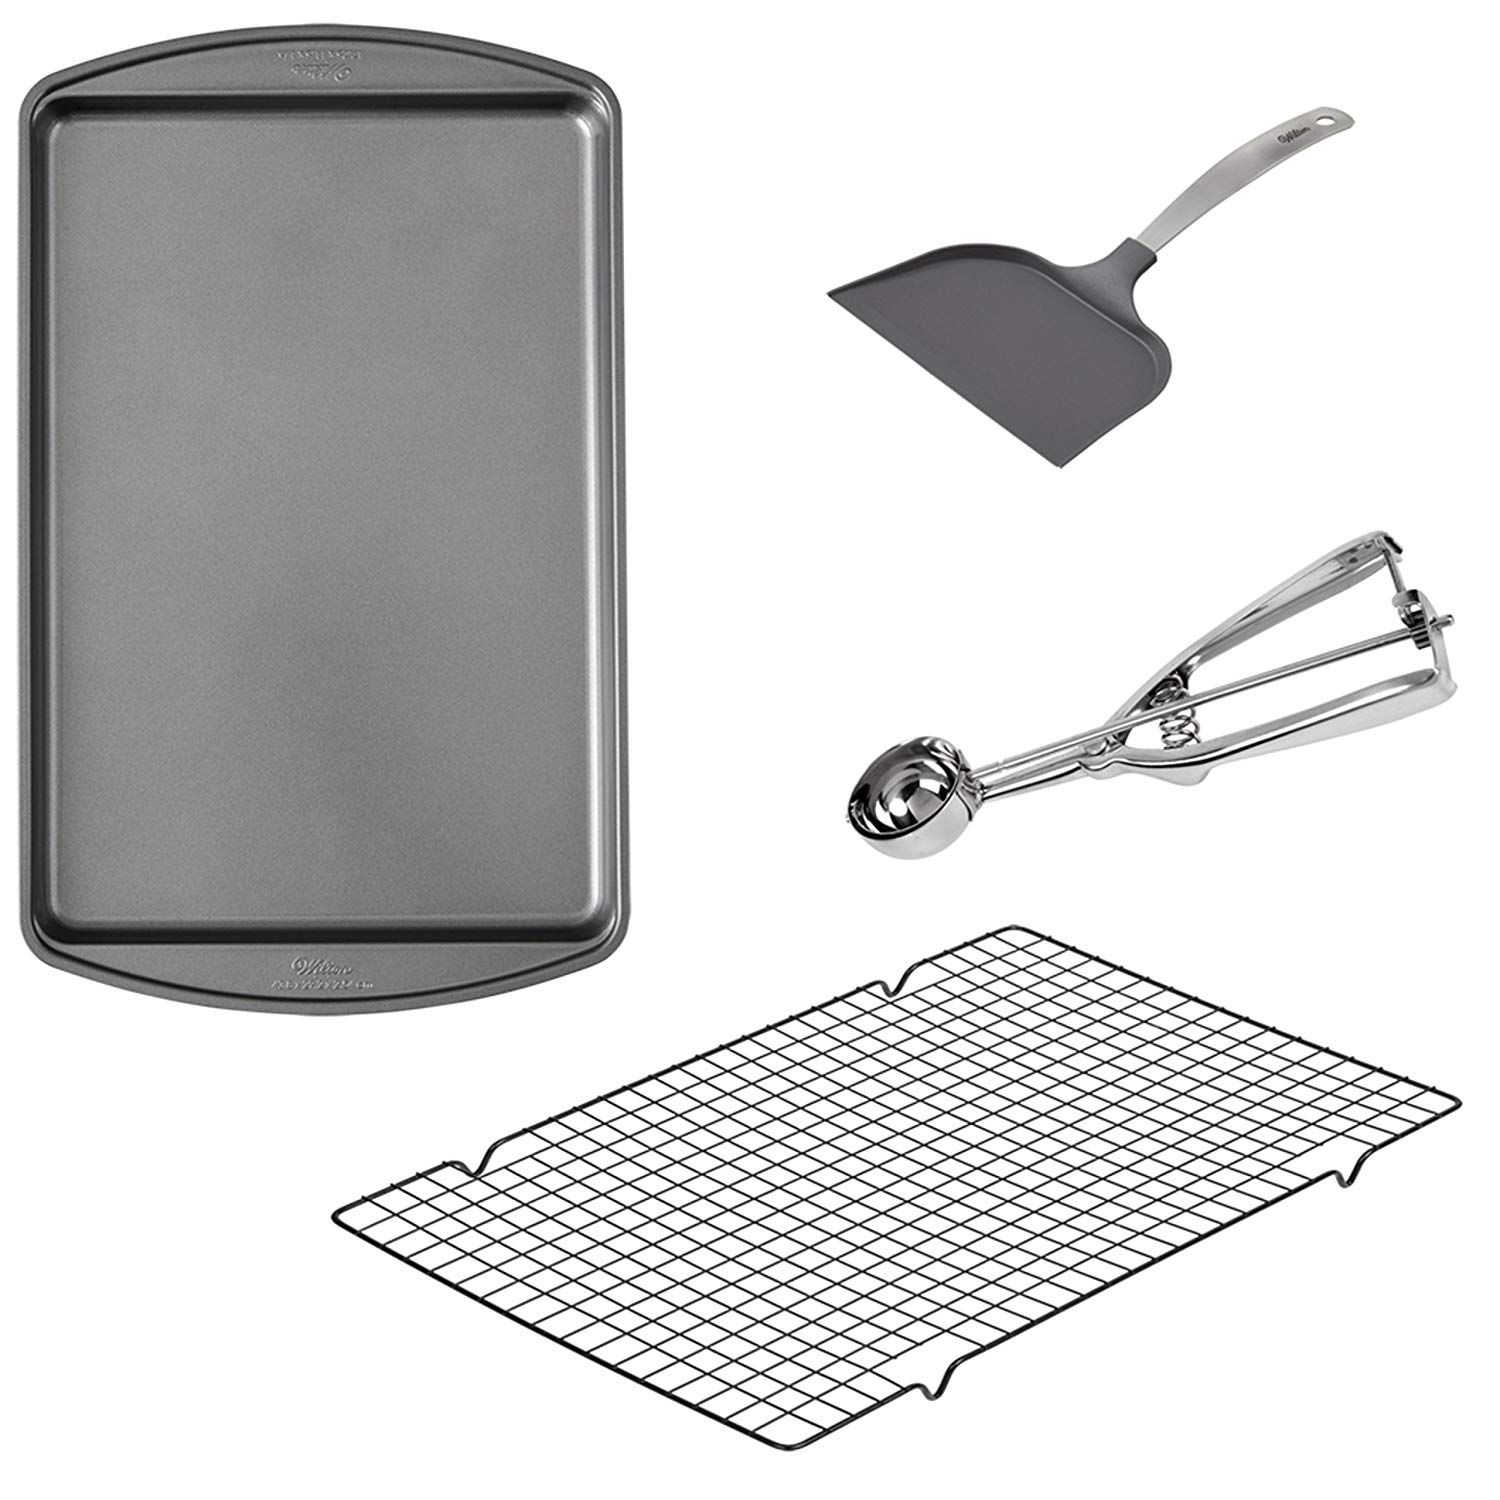 Wilton Cookie Baking Set 4 Piece 17 25 X 11 5 Inch Non Stick Cookie Sheet 16 X 10 Inch Non Stick Cooling Rack Non Stick S Baking Set Wilton Cookie Sheet